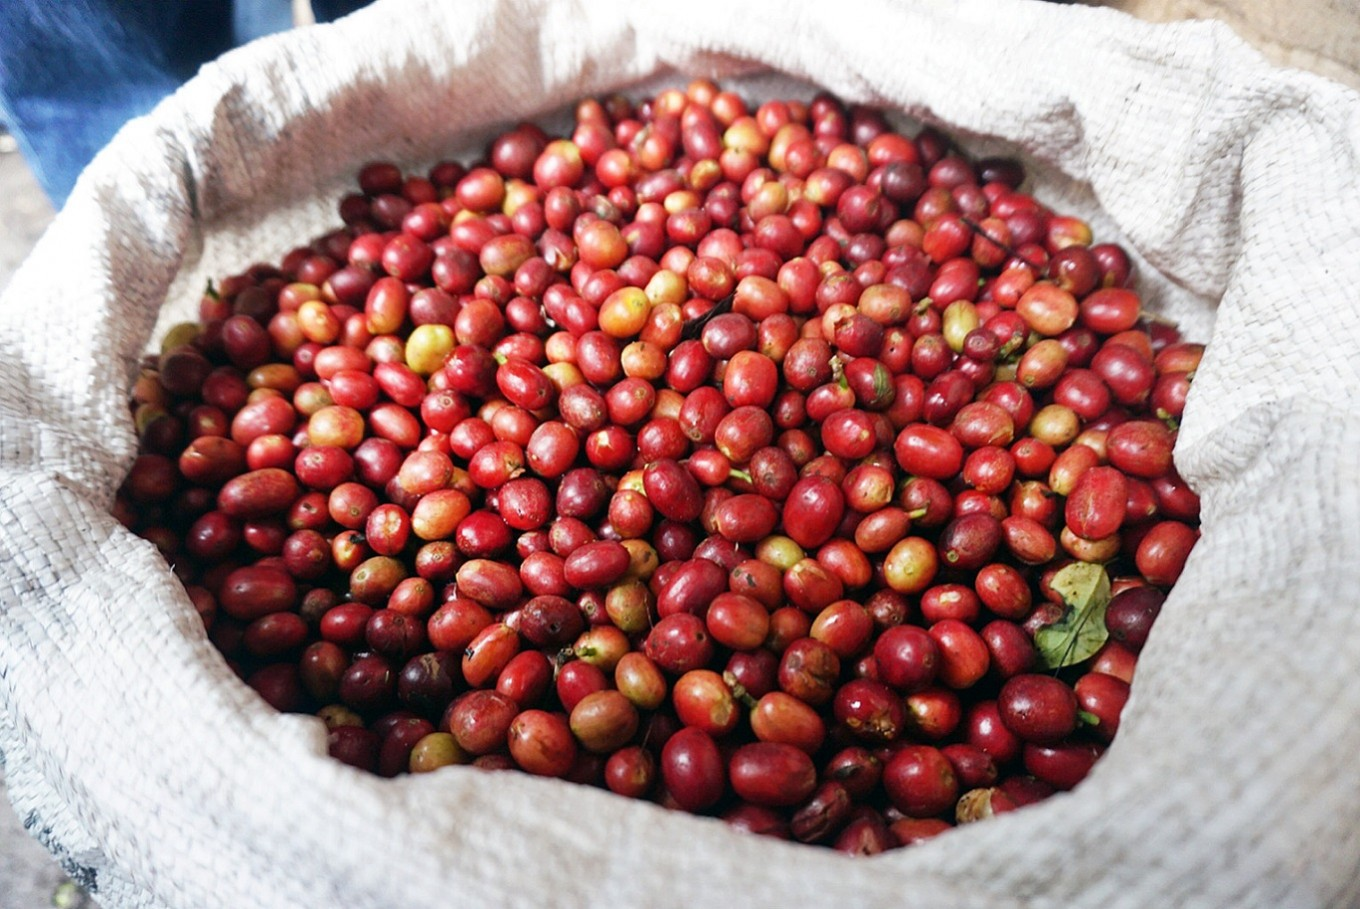 Flavorful journey into coffee provenance